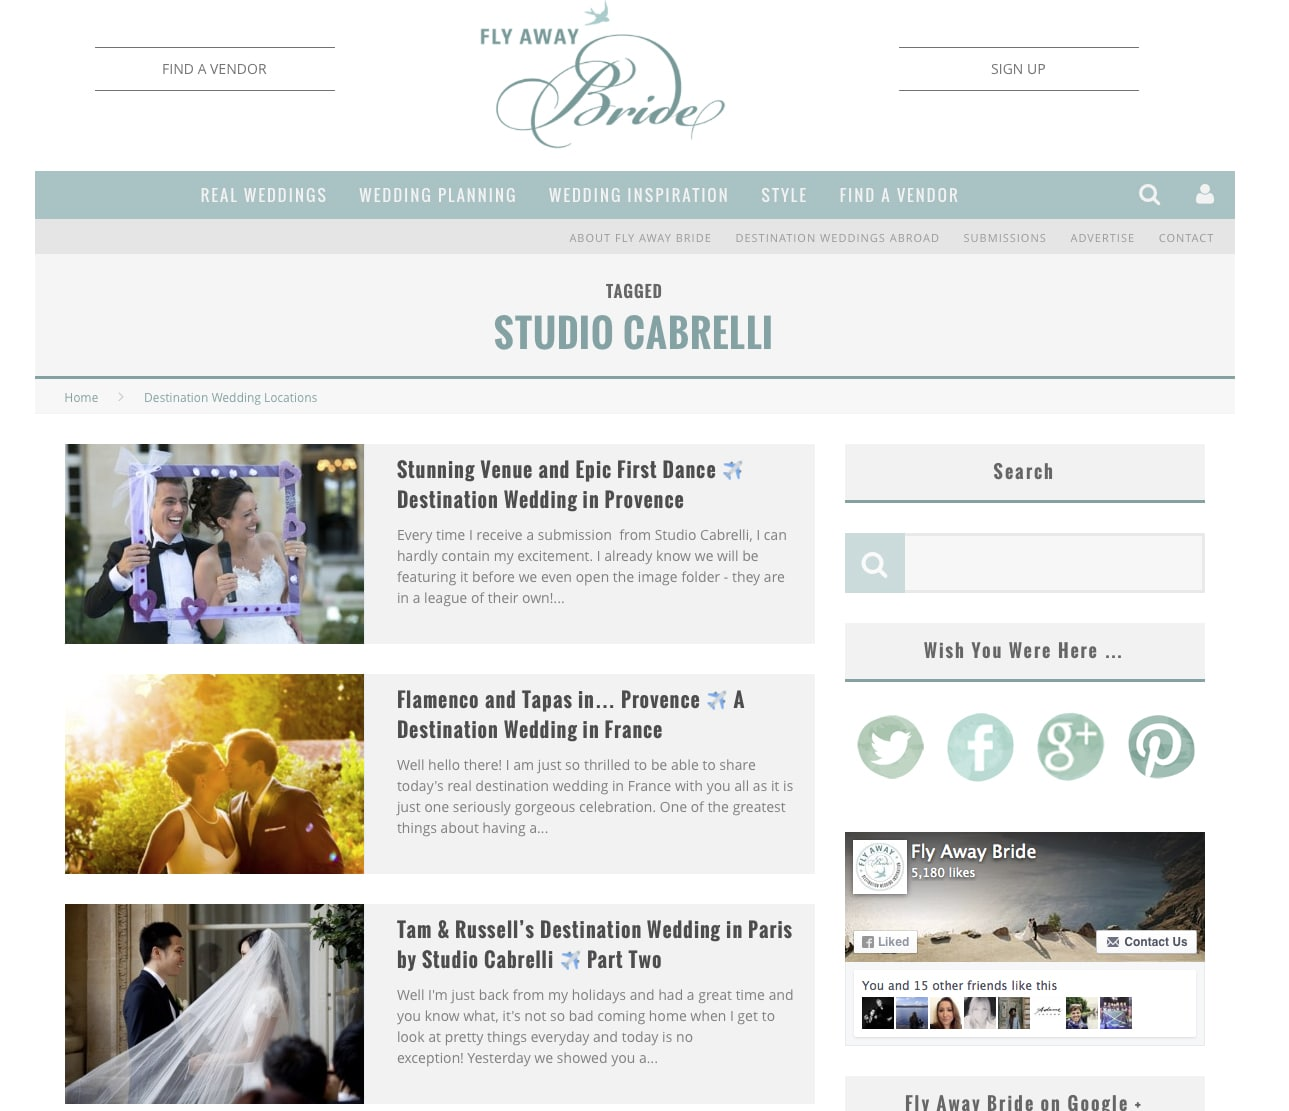 studio-cabrelli-featured-wedding-blog